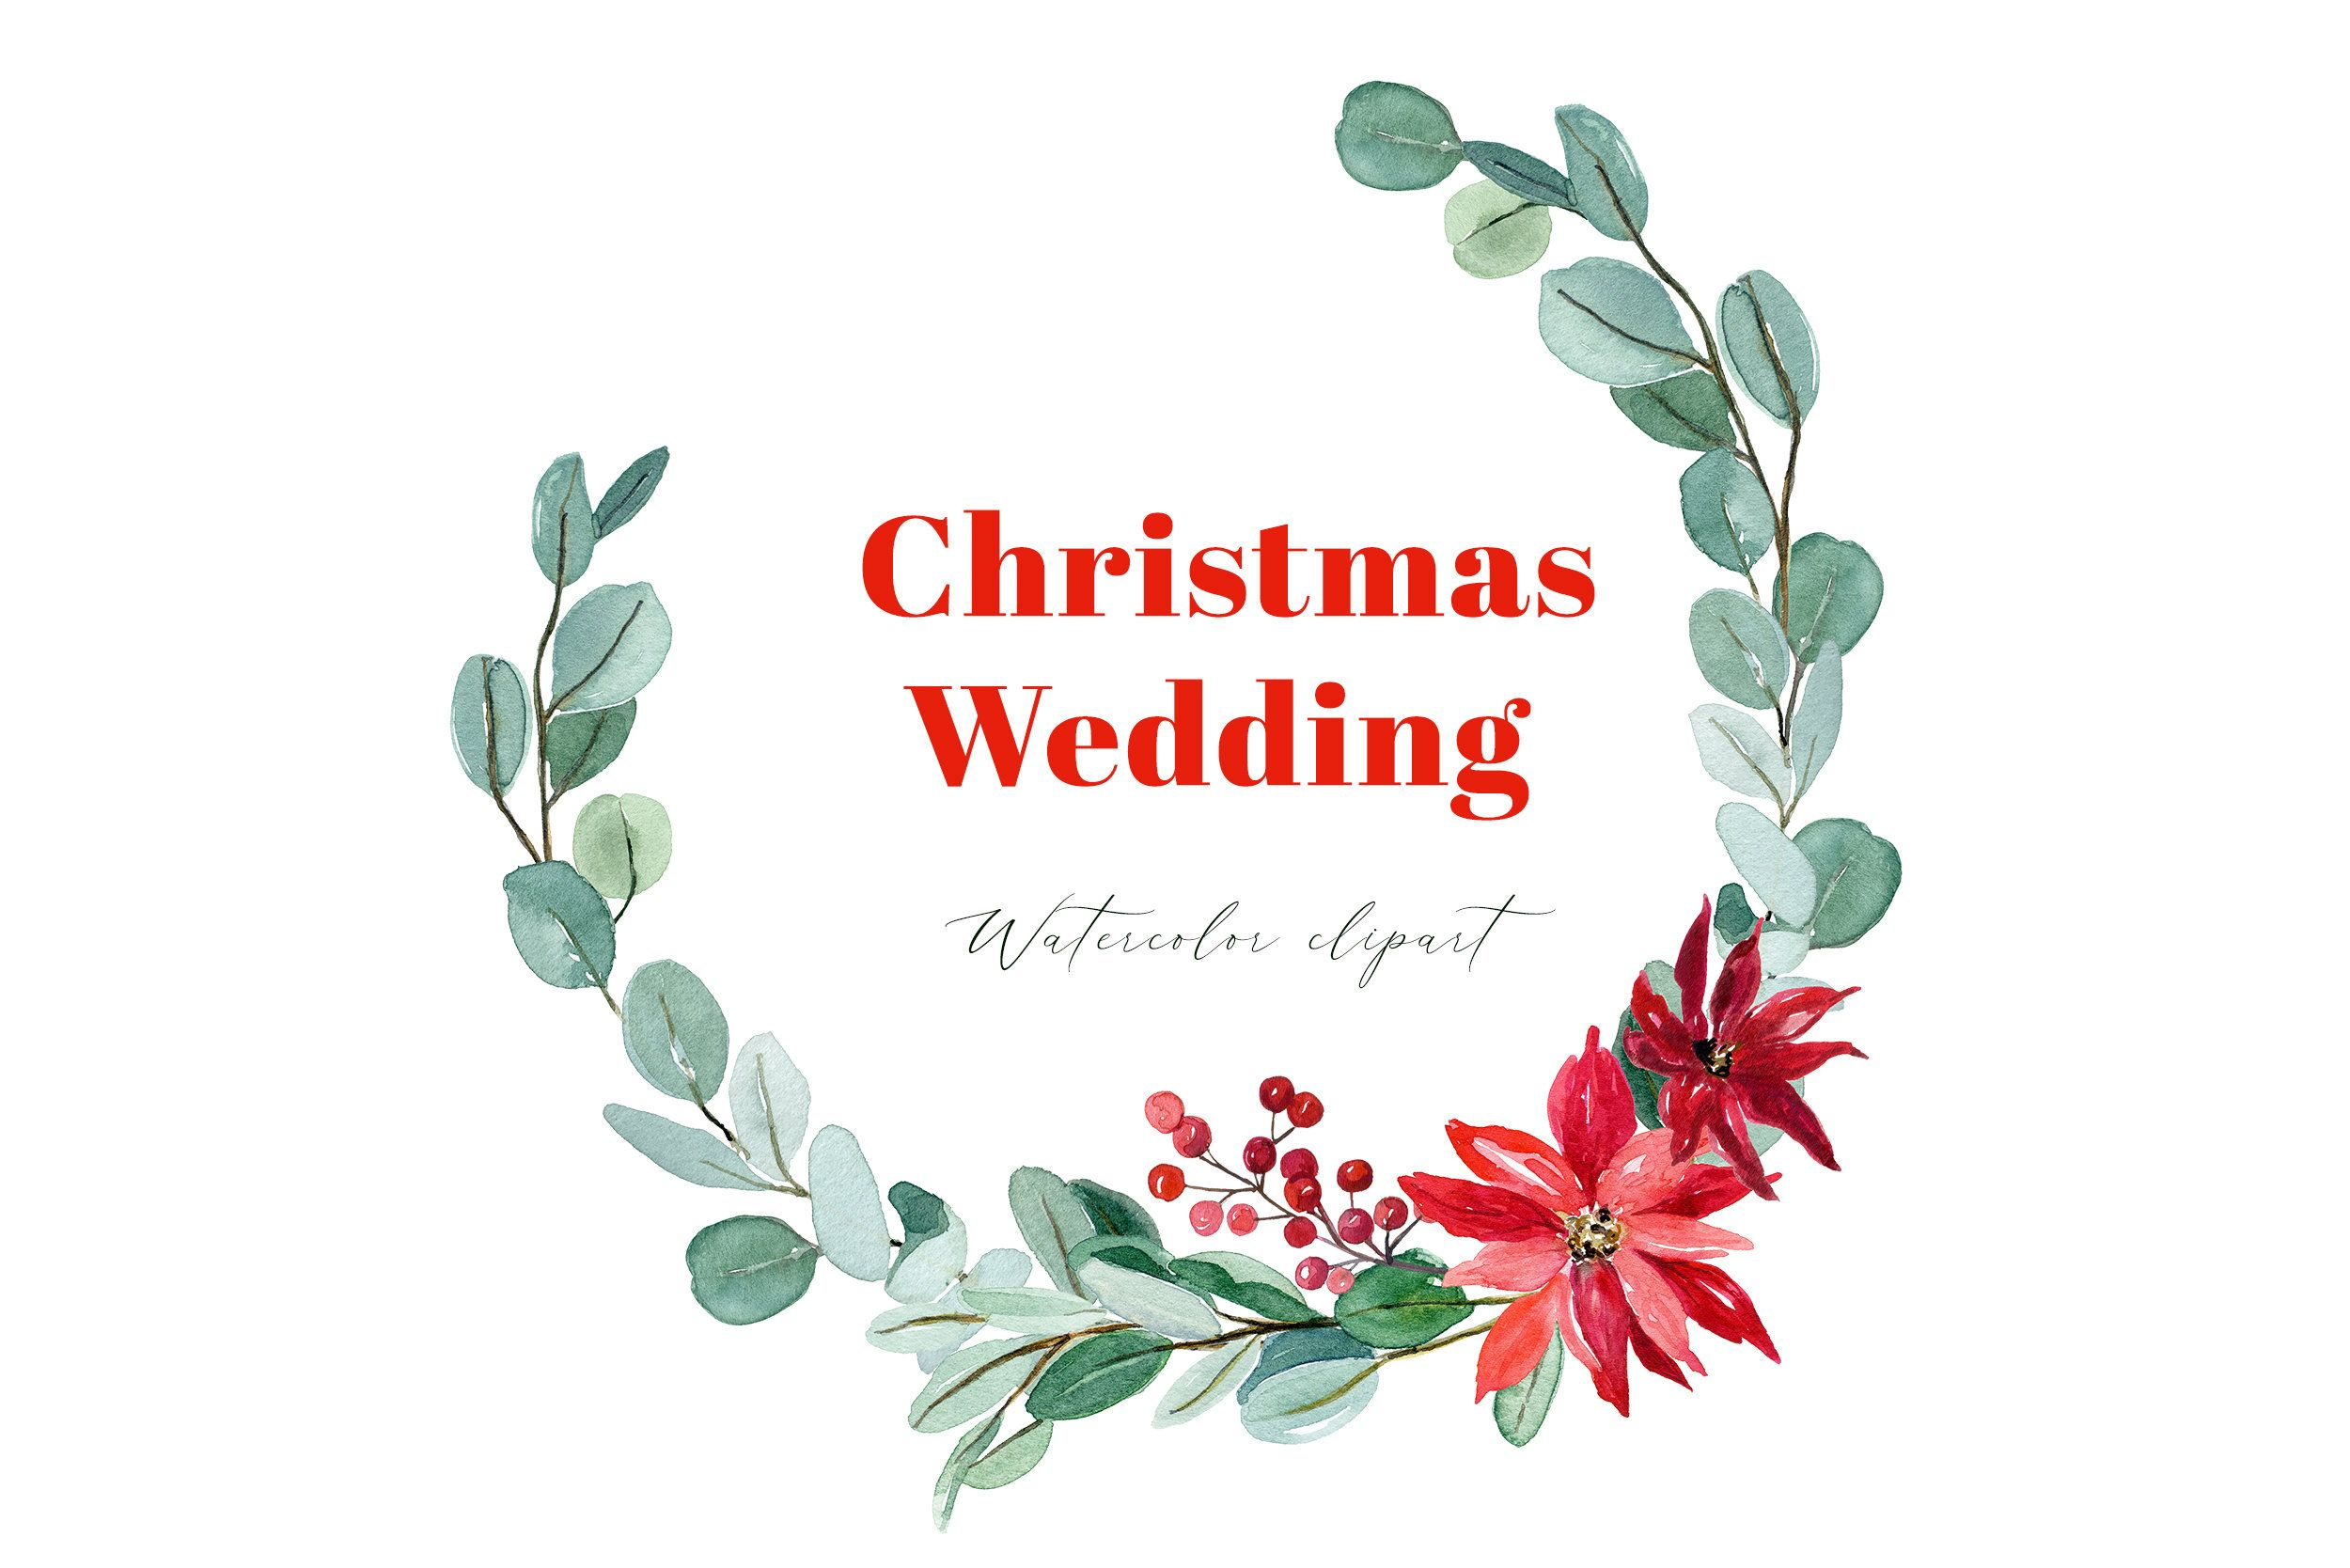 Christmas Wedding Wreath Watercolor Wreath Png Etsy Wreath Watercolor Christmas Watercolor Christmas Clipart